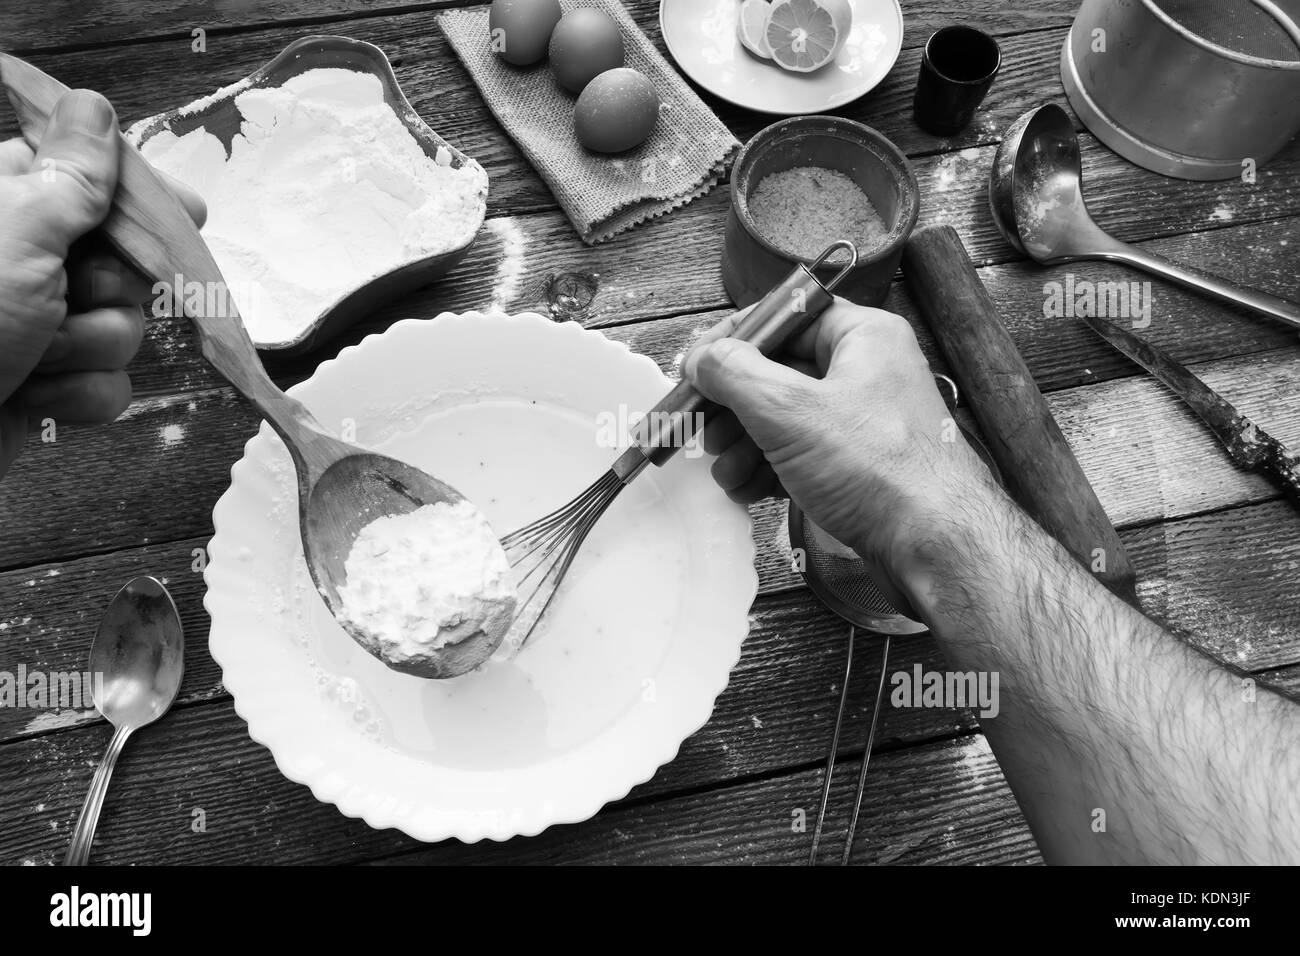 The man knead the dough with a whisk. Wheat flour, batter, eggs, a lemon and kitchen utensils on wooden table. Preparation - Stock Image